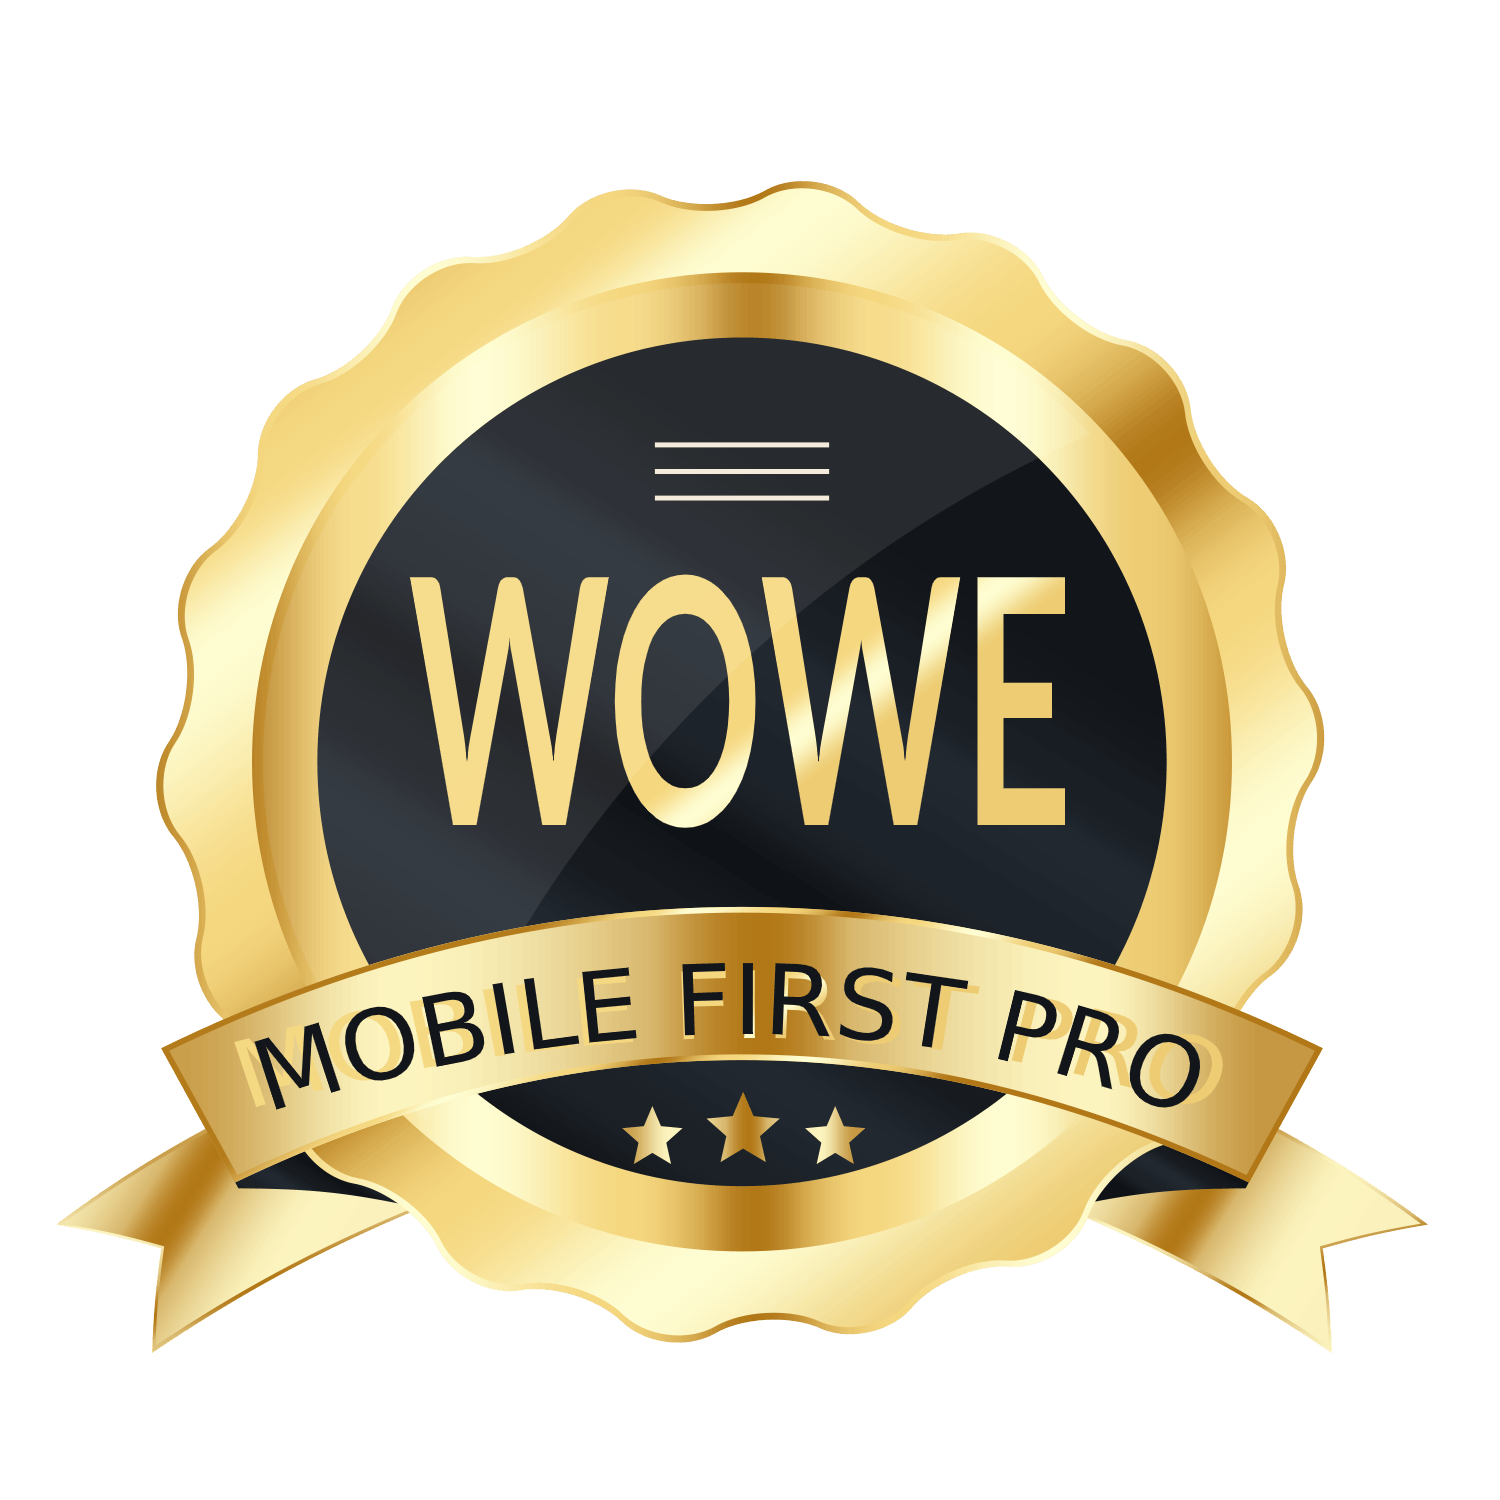 WOWE Mobile First Pro Websites